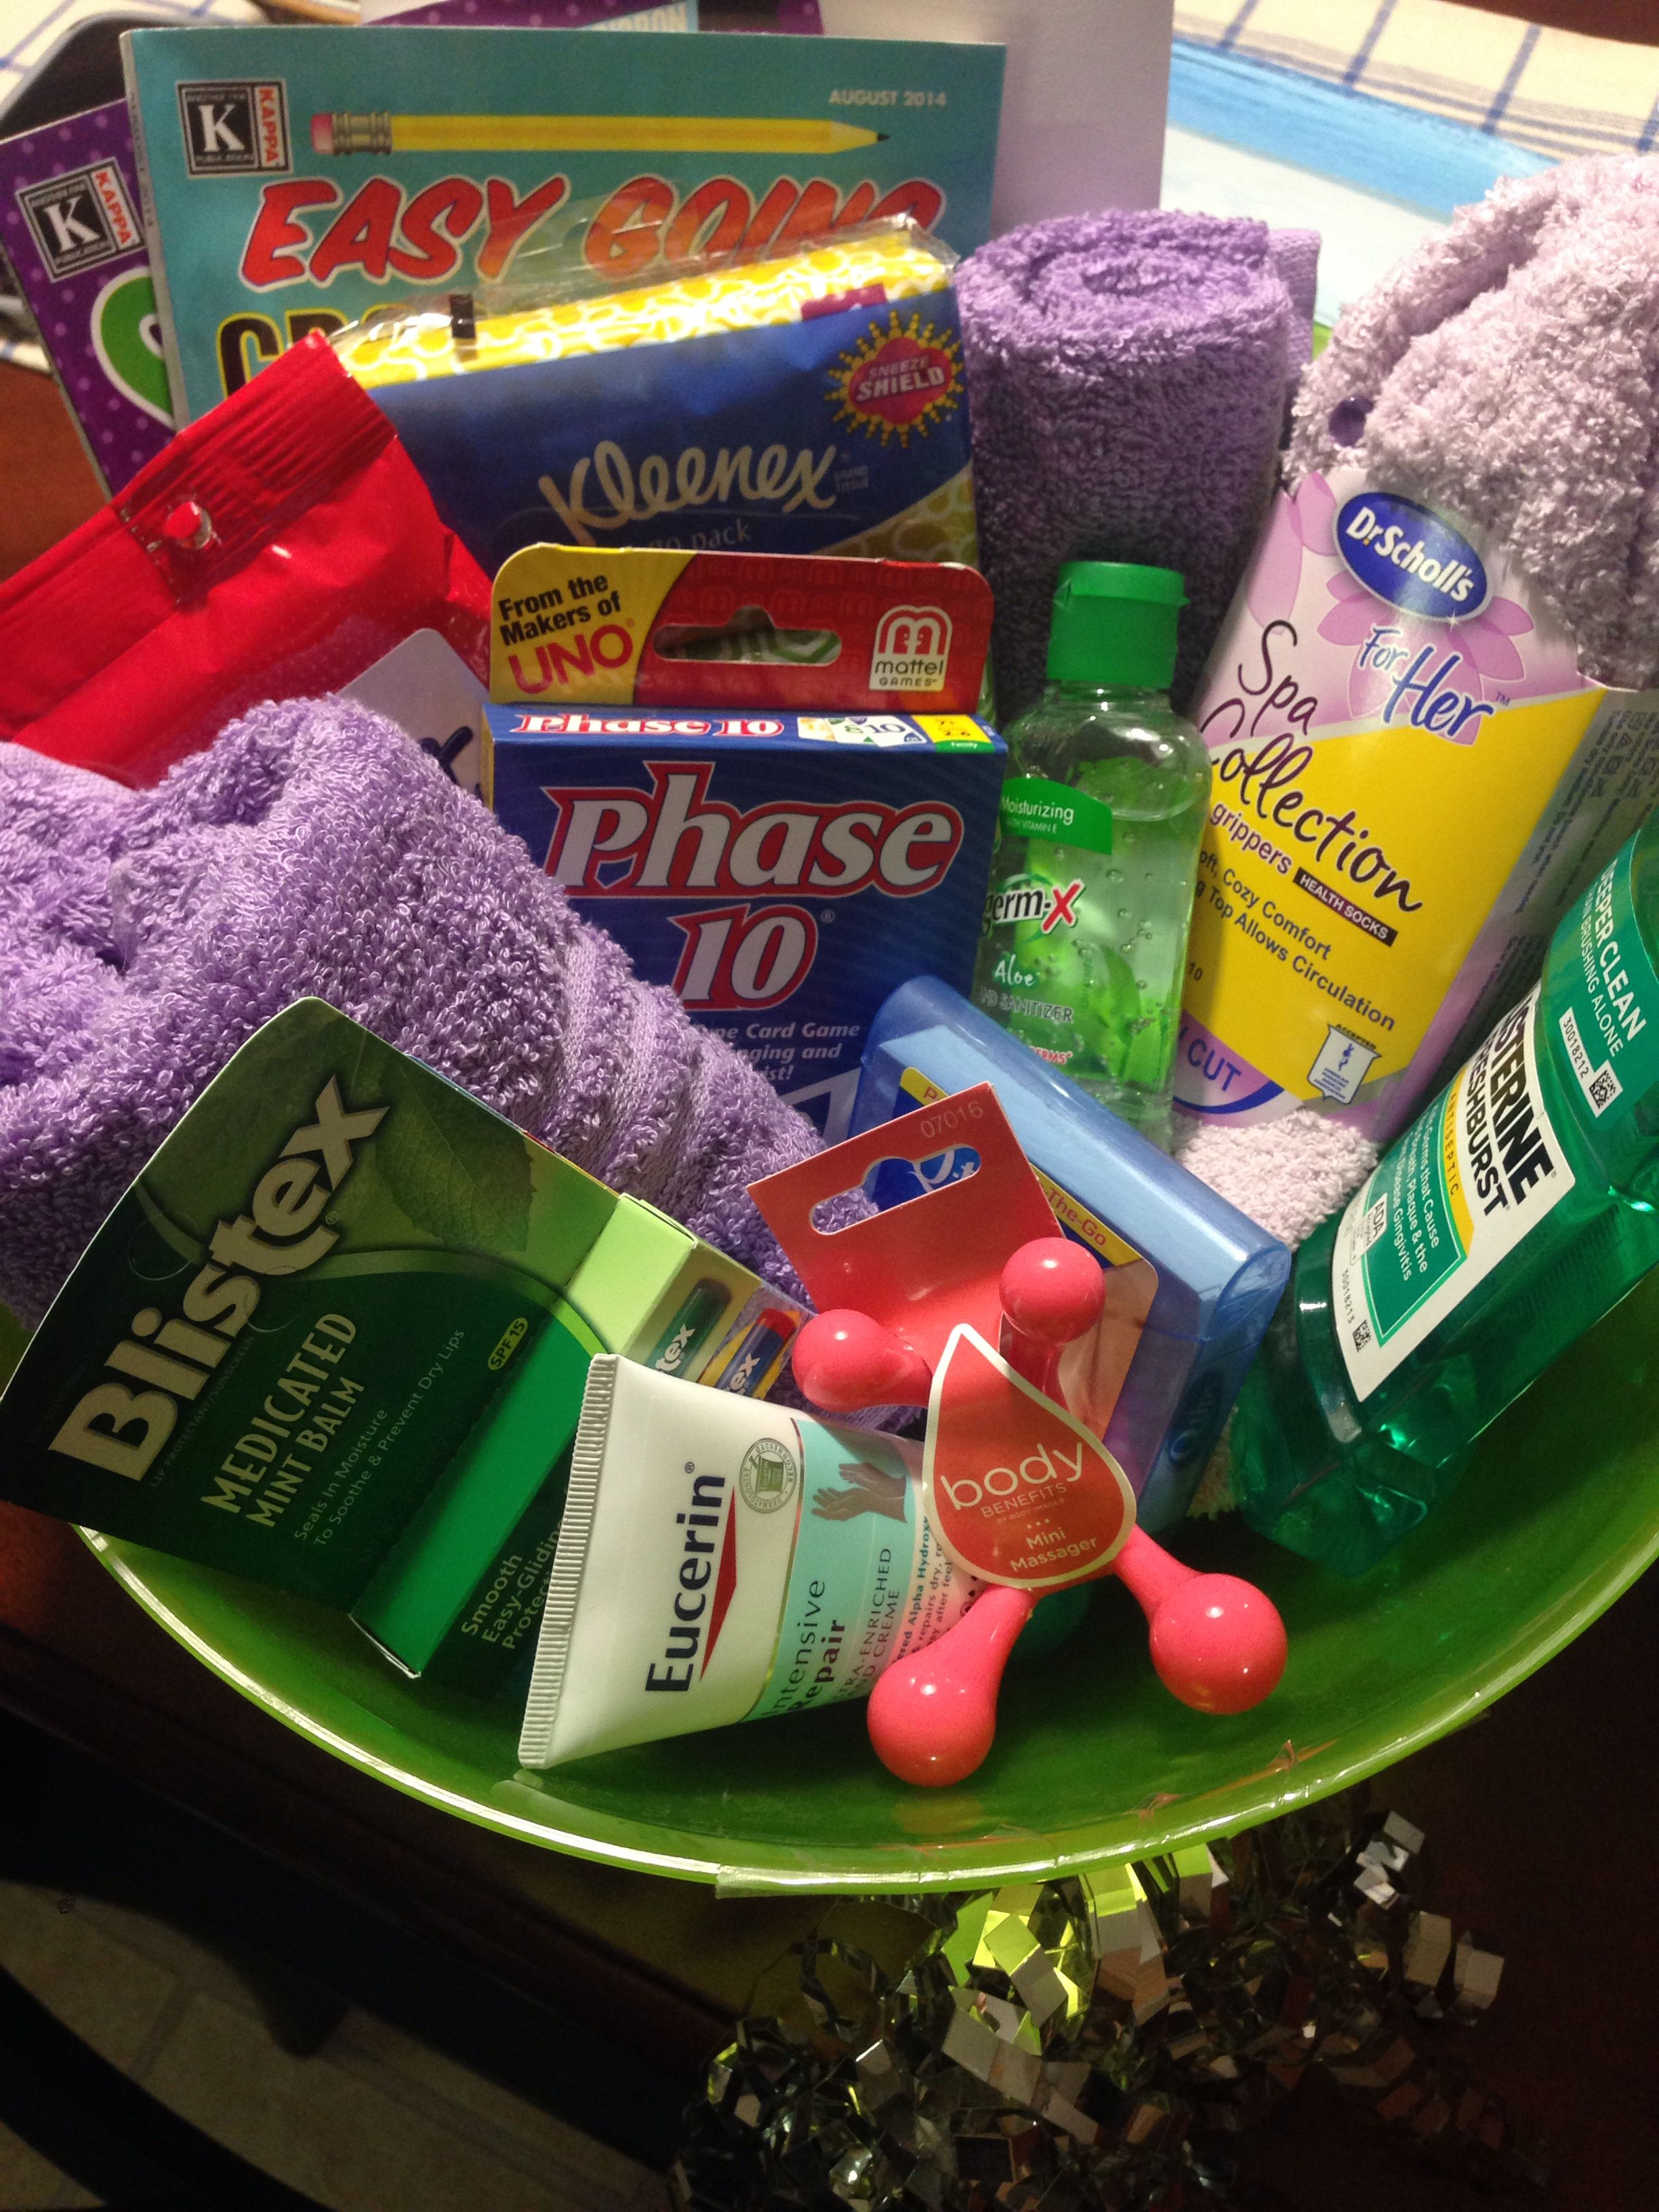 Hospital Care Package Get Well Soon Gift For My Aunt The Comforts Of Home Get Well Gifts Hospital Care Package Get Well Soon Gifts